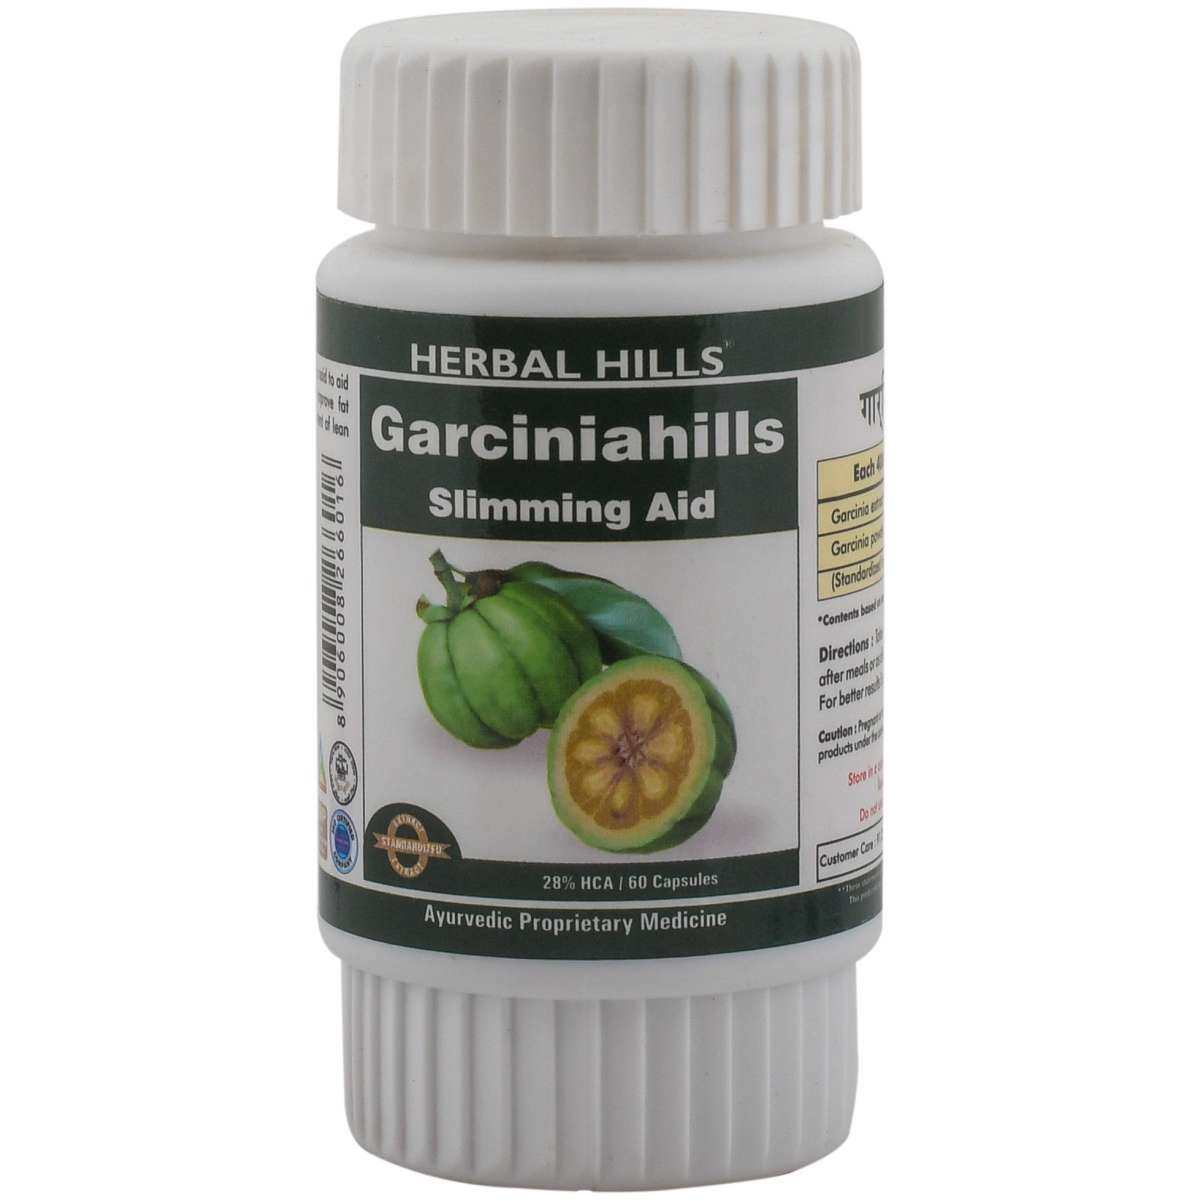 Herbal Hills Garcinia 60 Capsule (Garcinia cambogia) - 400 mg Powder and Extract blend in a capsule - Natural weight loss